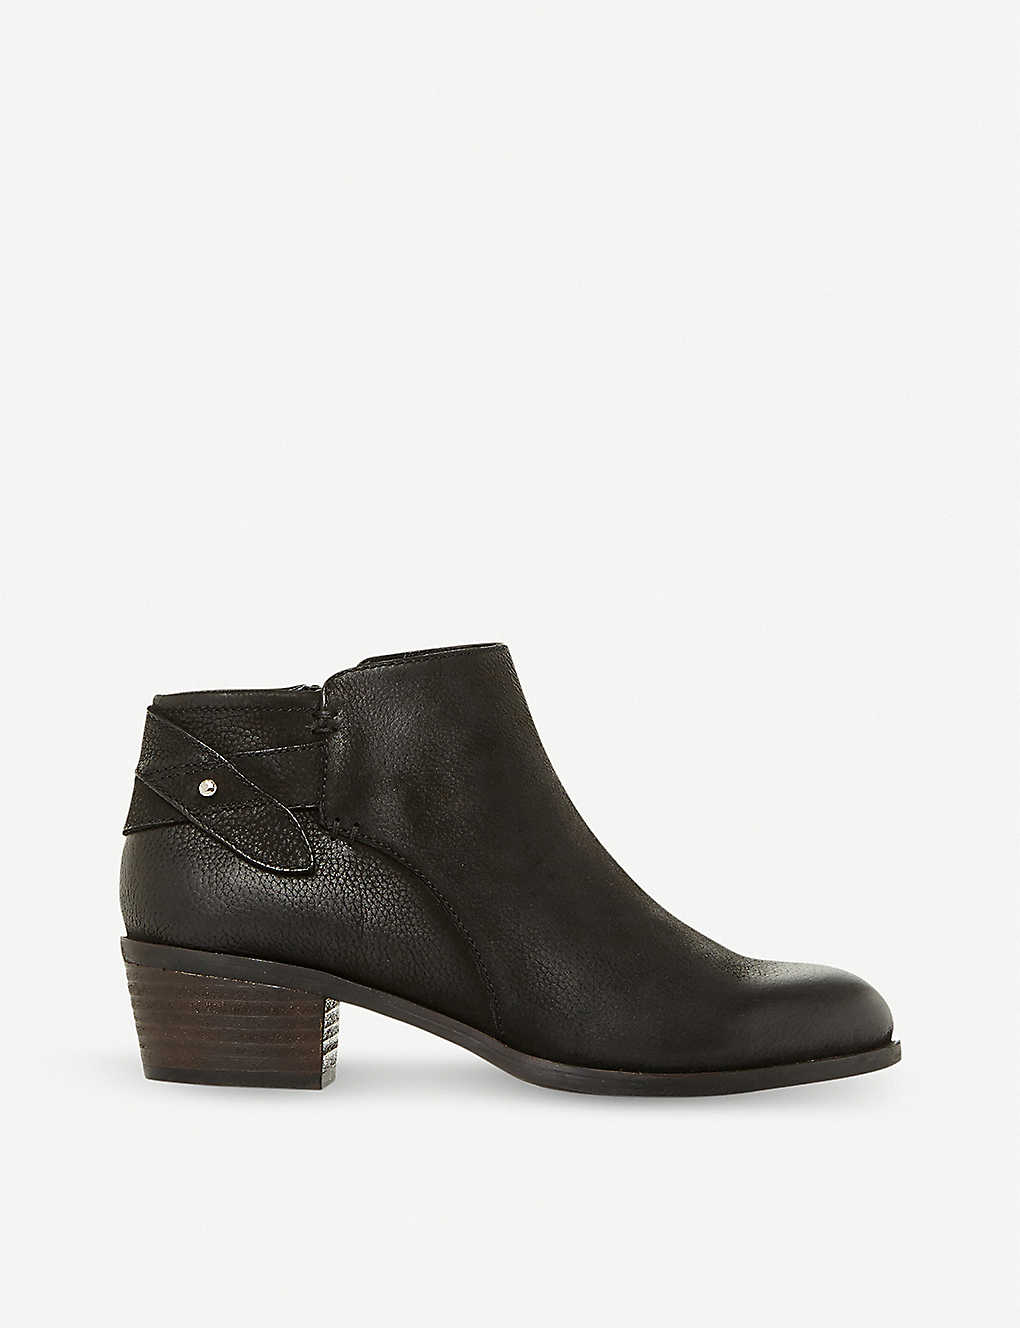 a2592bae263 Nicola SM leather ankle boot